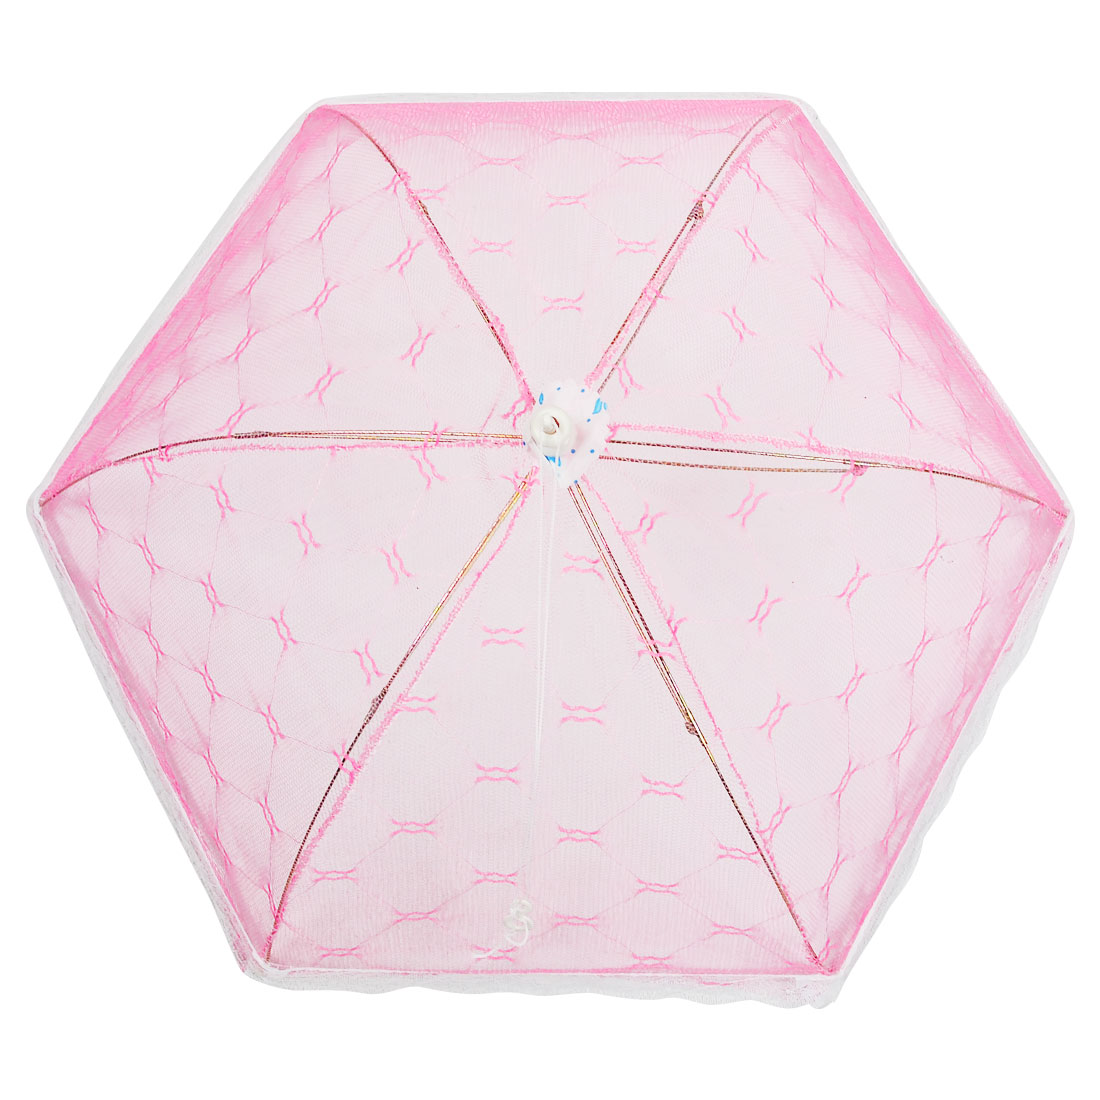 Kitchen Rhombus Pattern White Lace Trim Pink Foldable Food Cover Umbrella